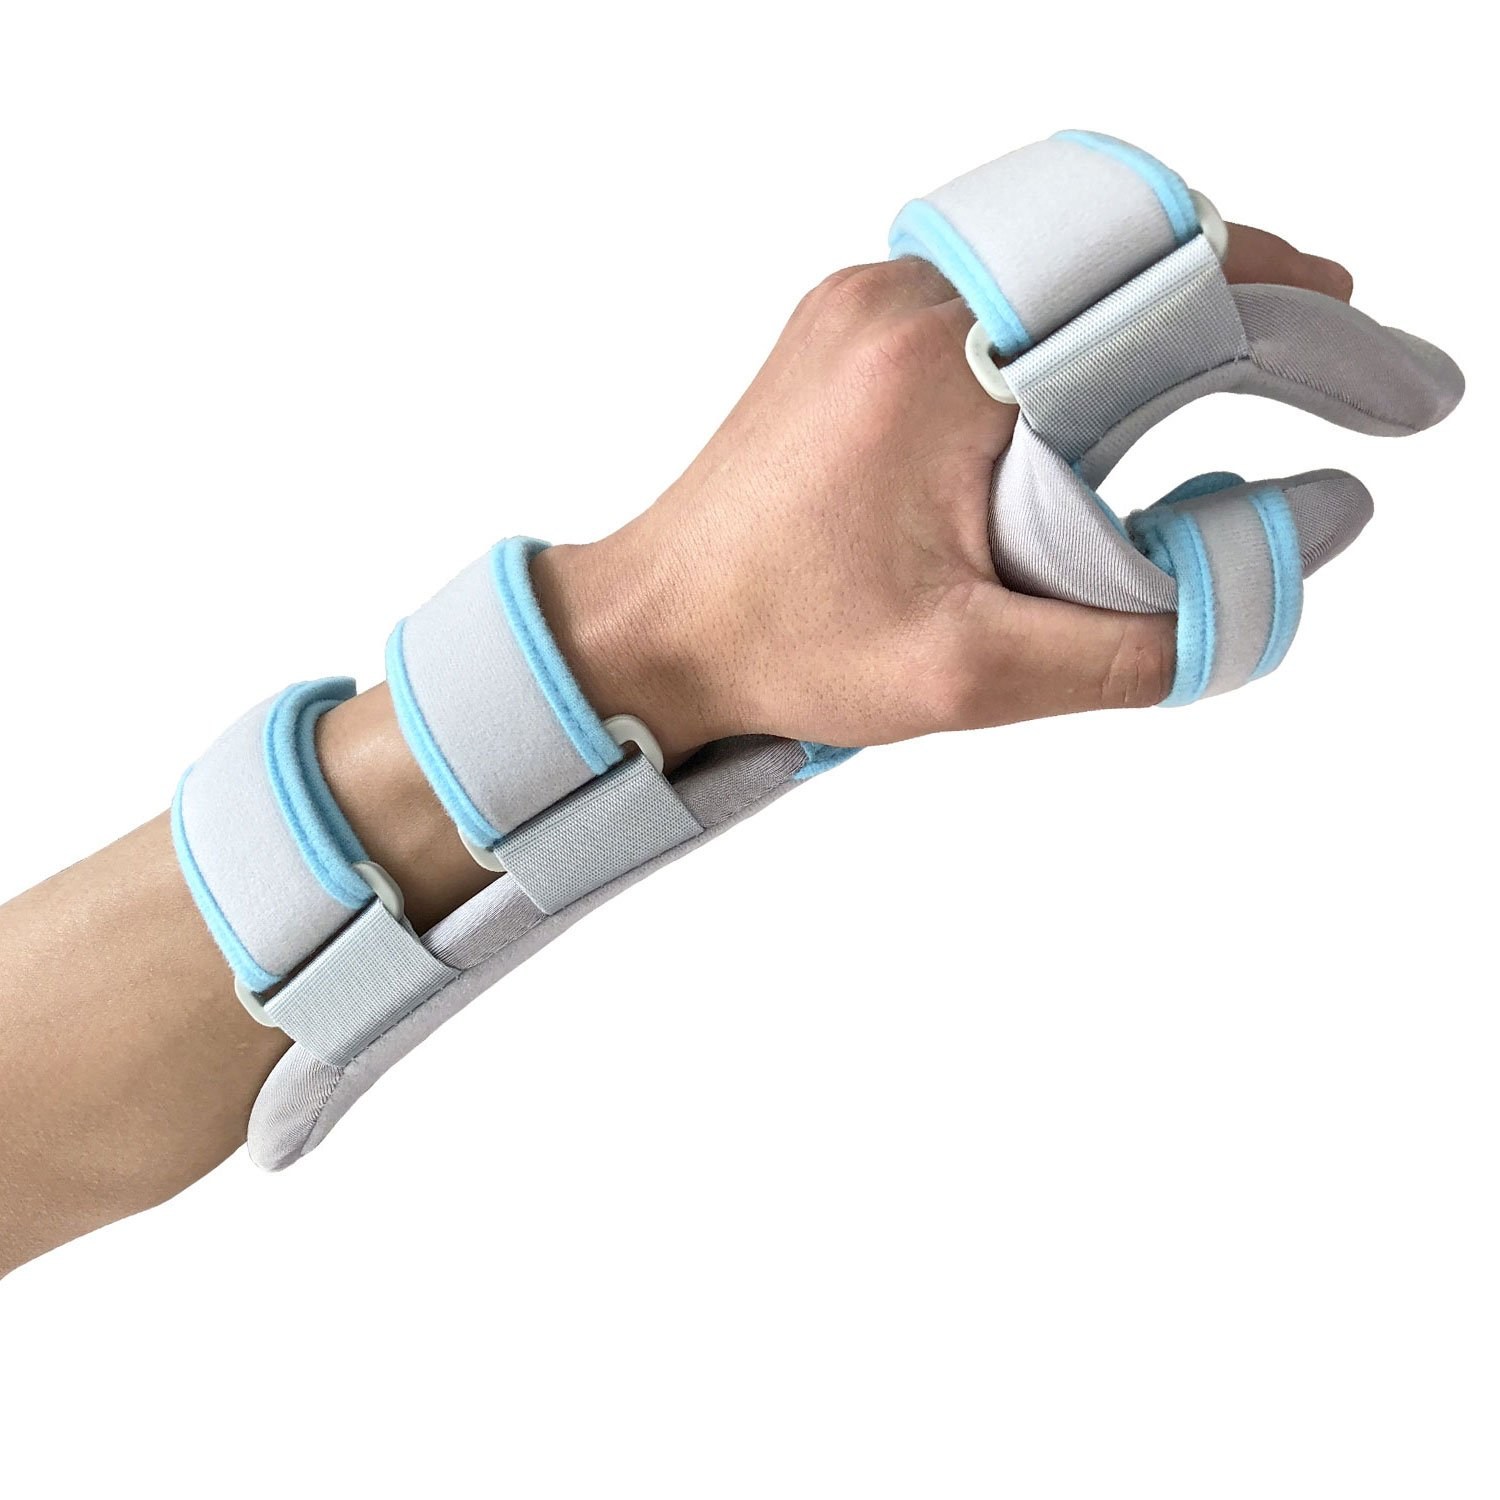 Hand Splint Functional Resting Wrist Support Moderate Stabilizing Brace for Carpal Tunnel, Tendinitis & Inflammation, Hand/Wrist/Thumb Immobilization, Forearm Wrist Splint FDA Approved (Left)